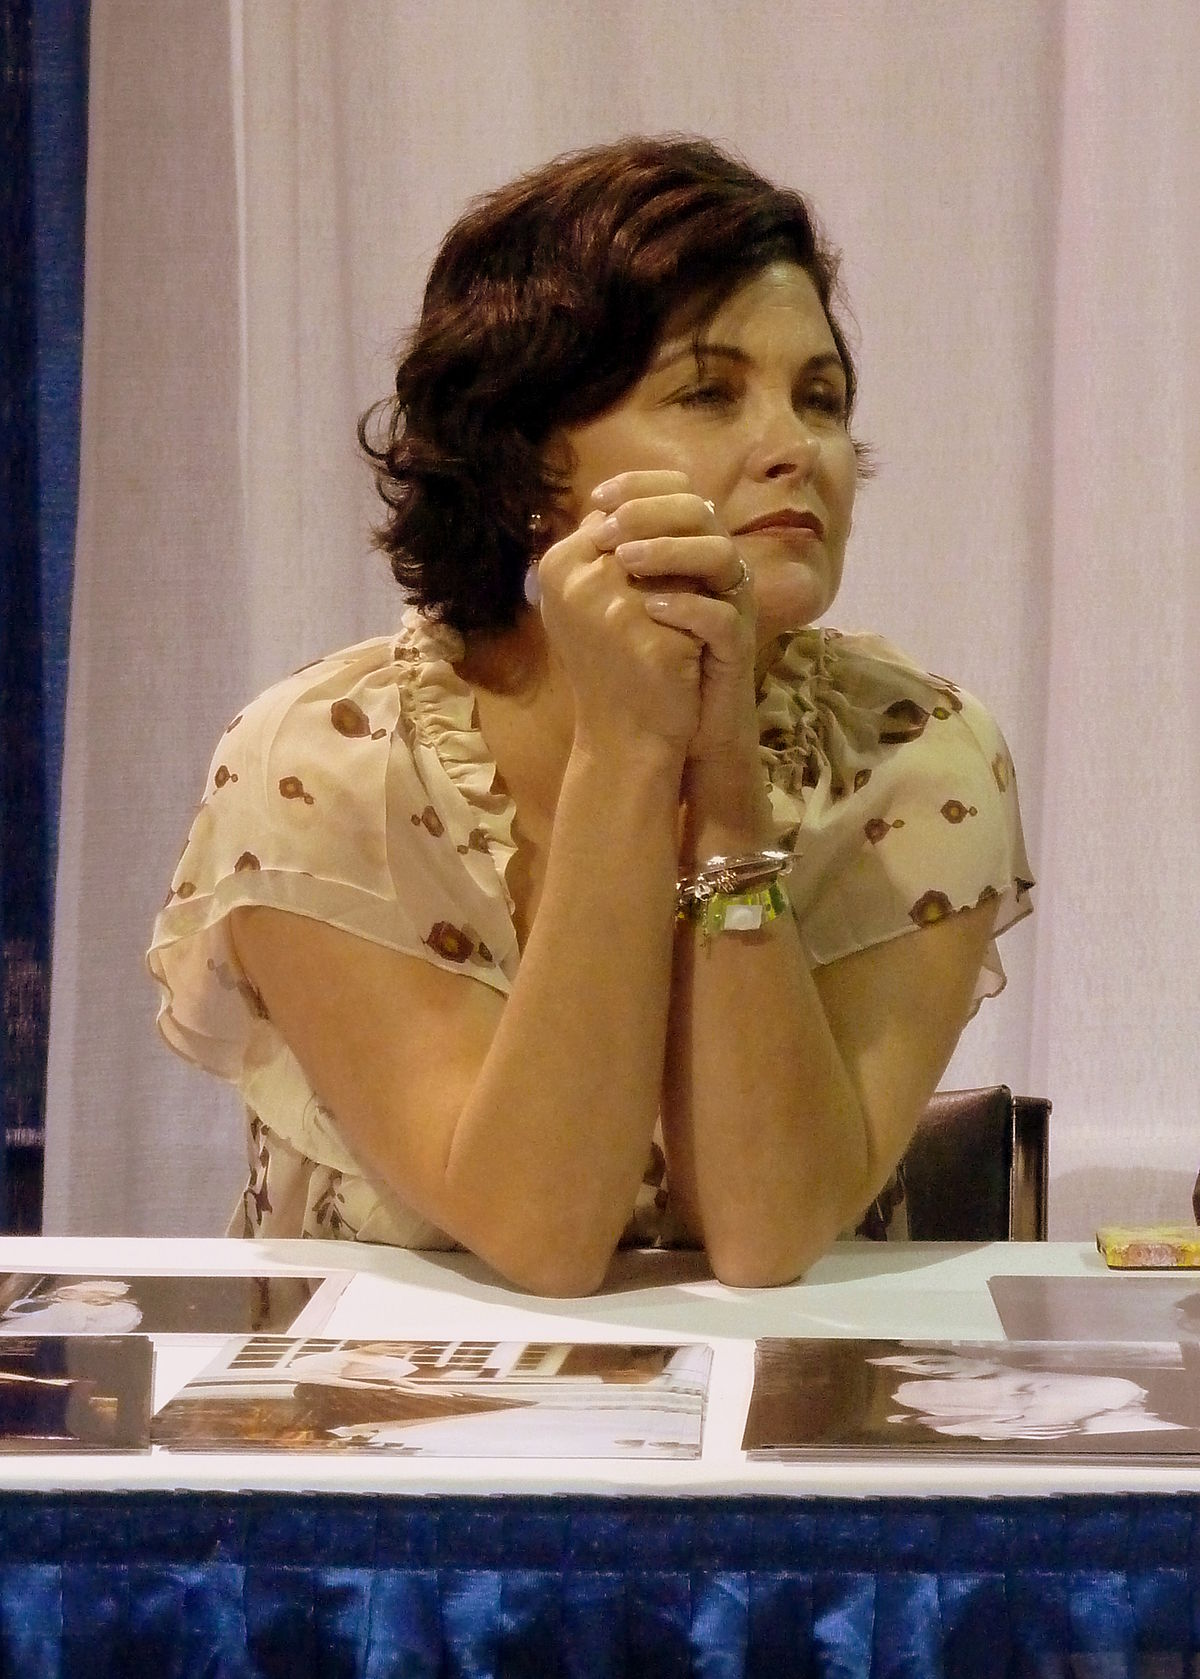 Sherilyn Fenn Wikipedia